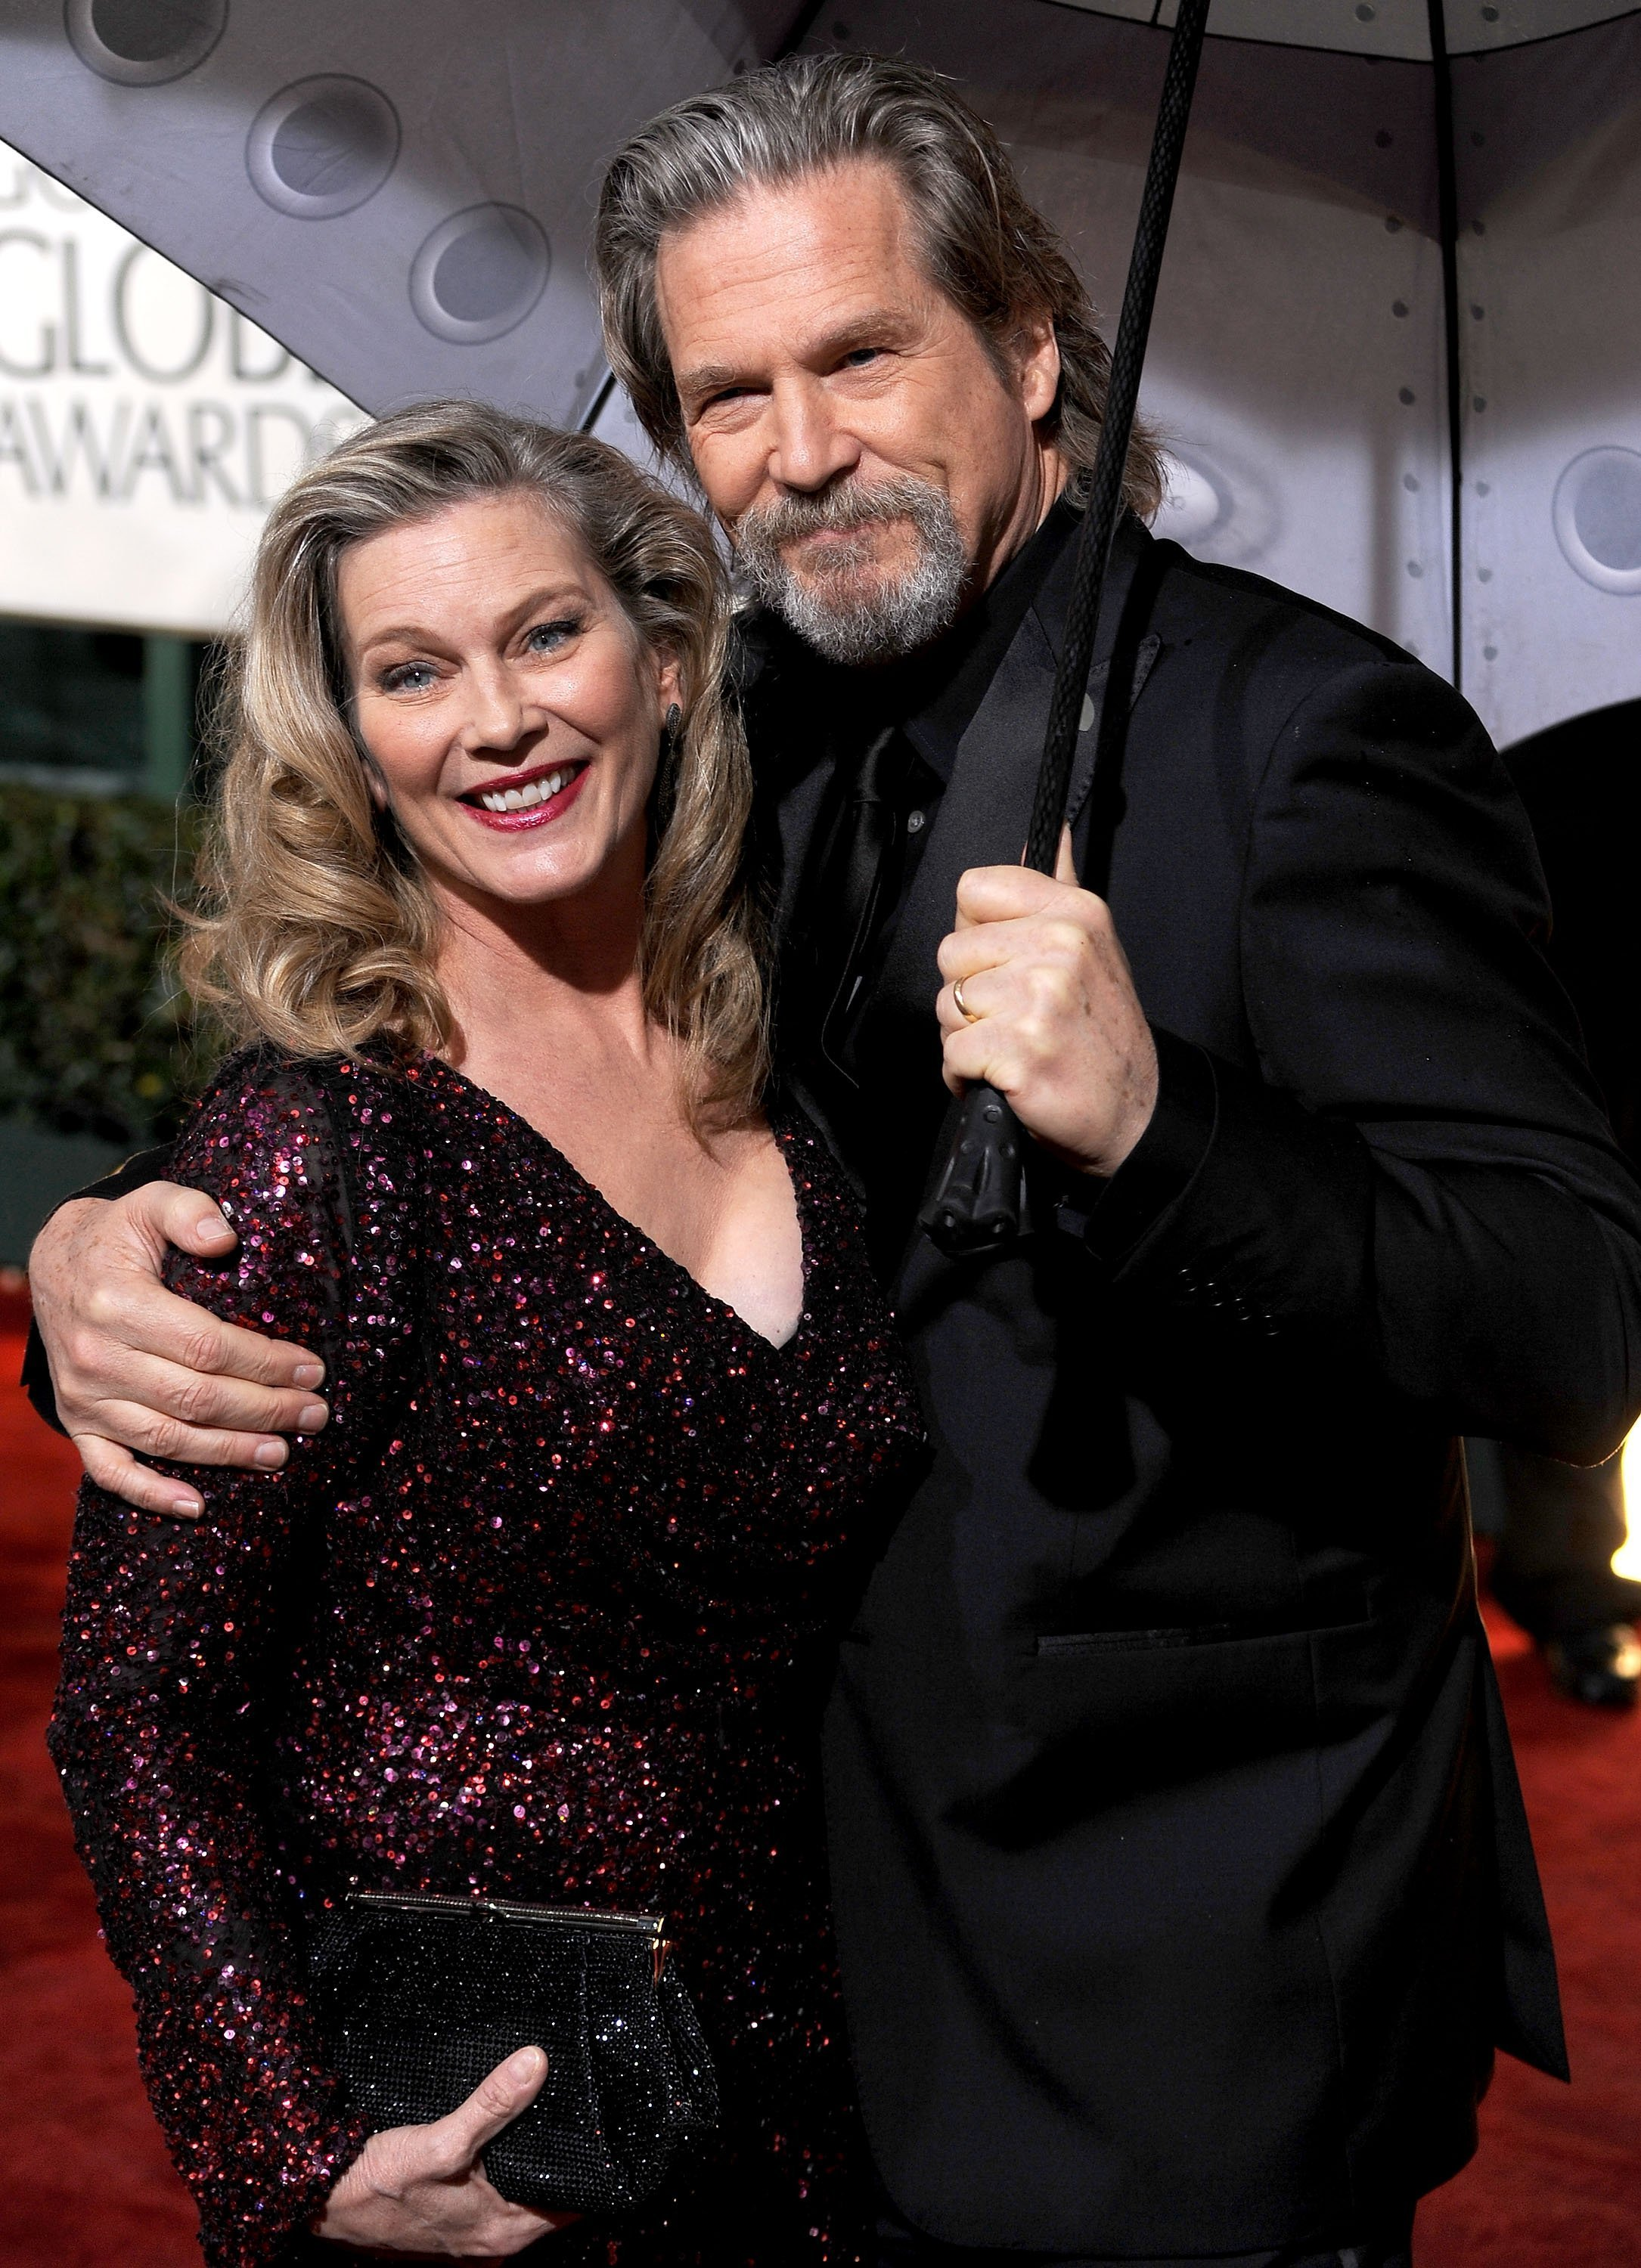 Susan Geston and actor Jeff Bridges arrive at the 67th Annual Golden Globe Awards on January 17, 2010. | Source: Getty Images